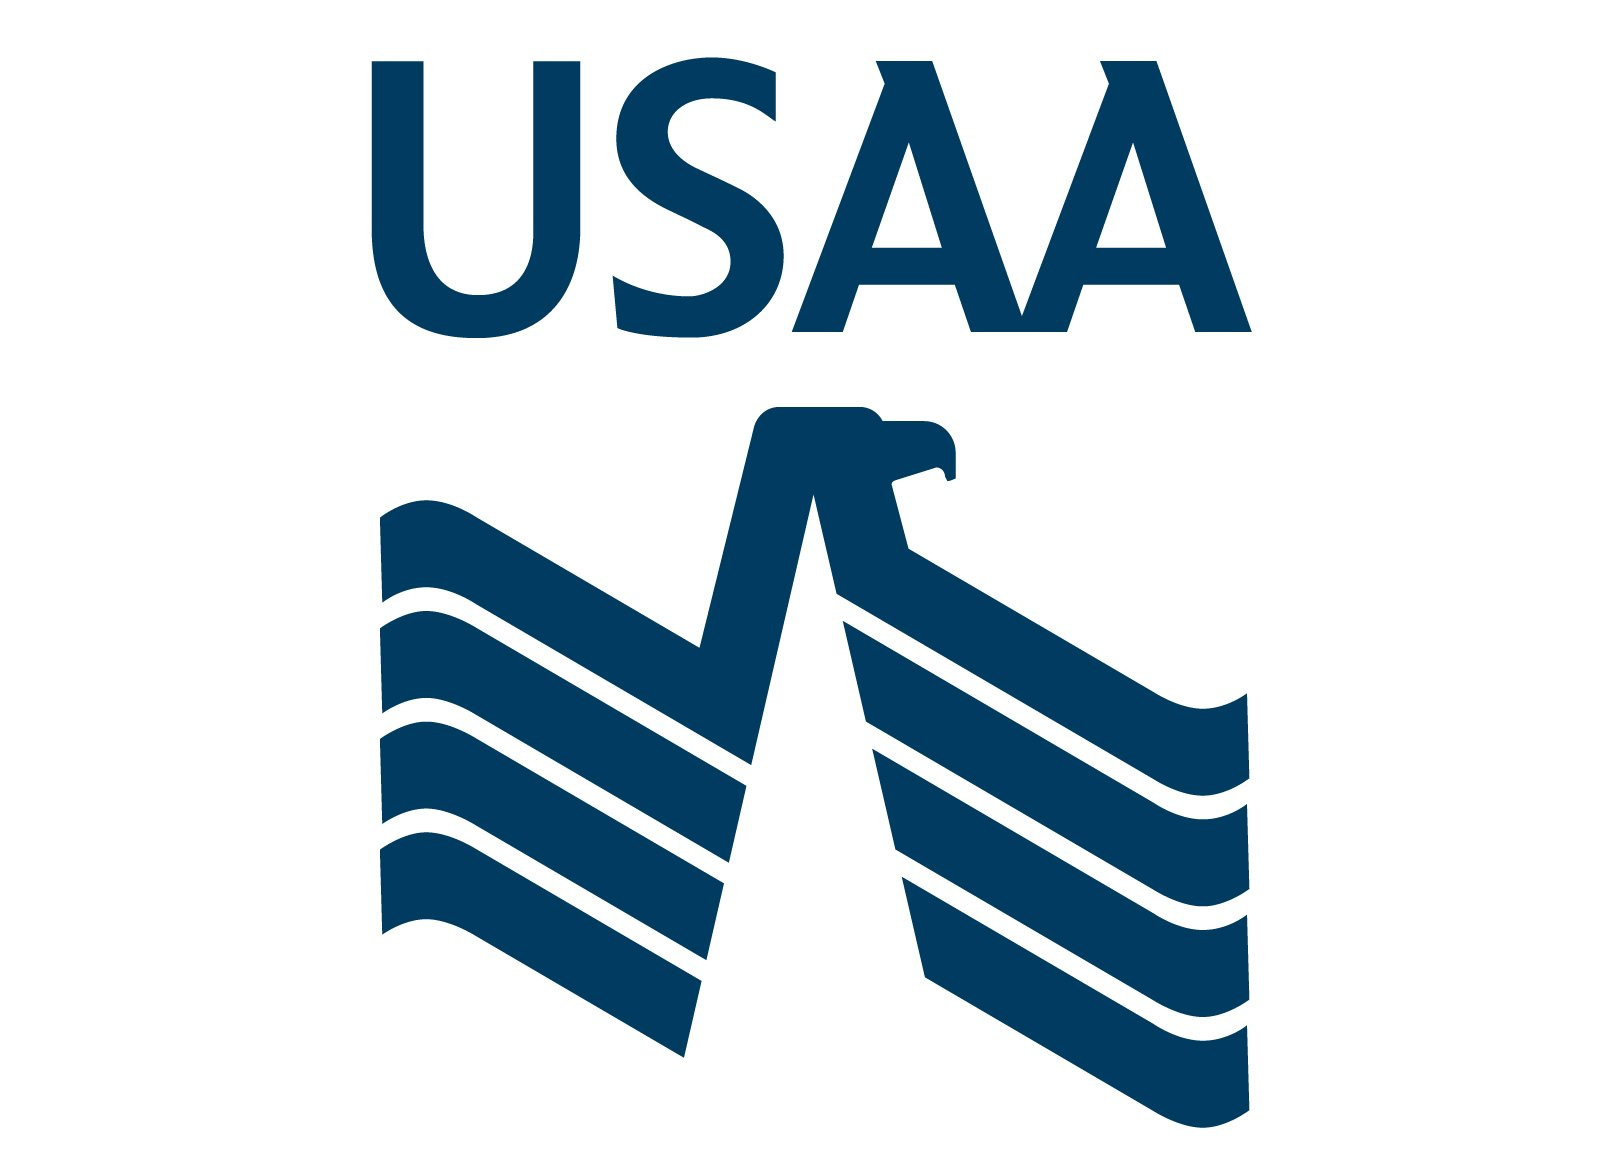 USAA Logo, USAA Symbol, Meaning, History and Evolution